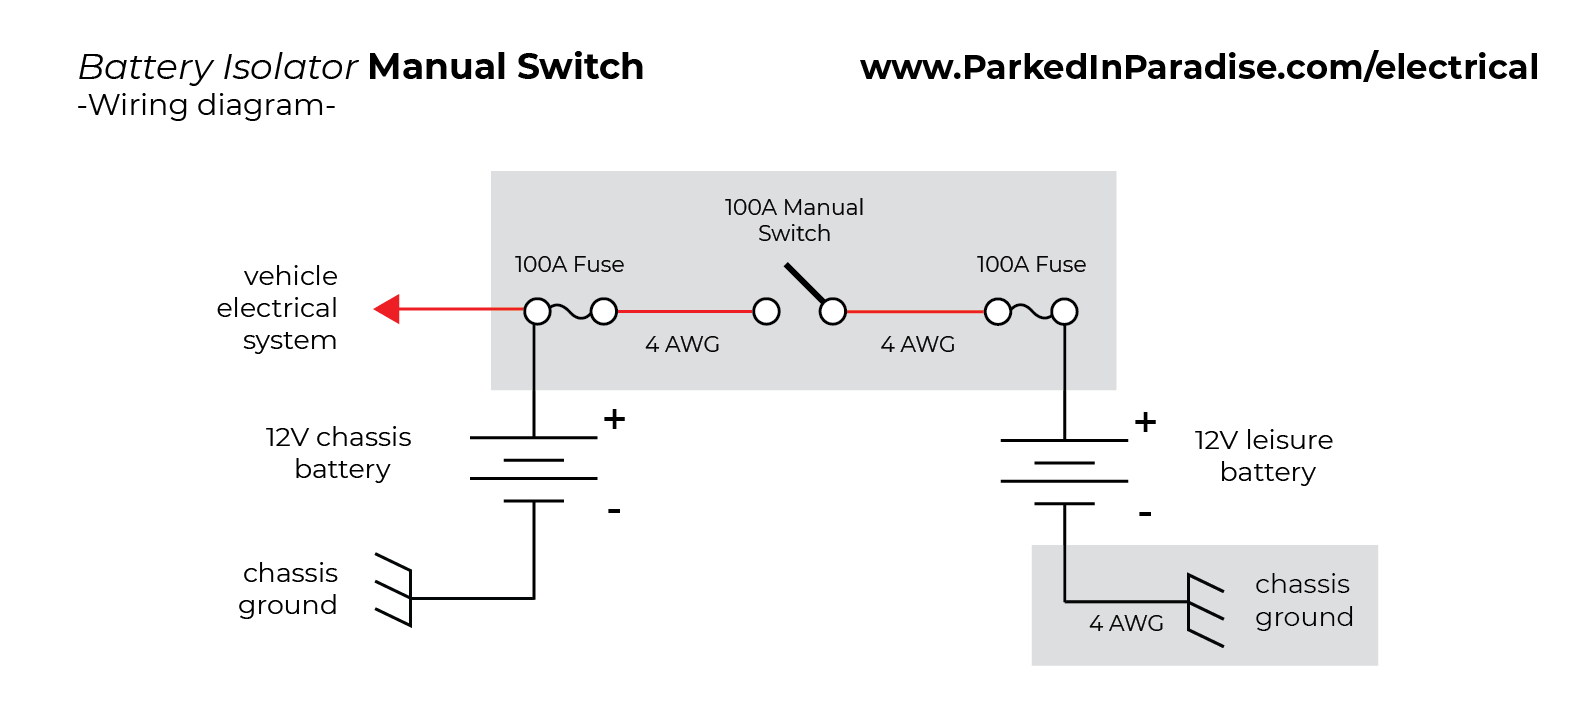 How To Install A Battery Isolator In Your Conversion Van | Parked In - Rv Battery Isolator Wiring Diagram